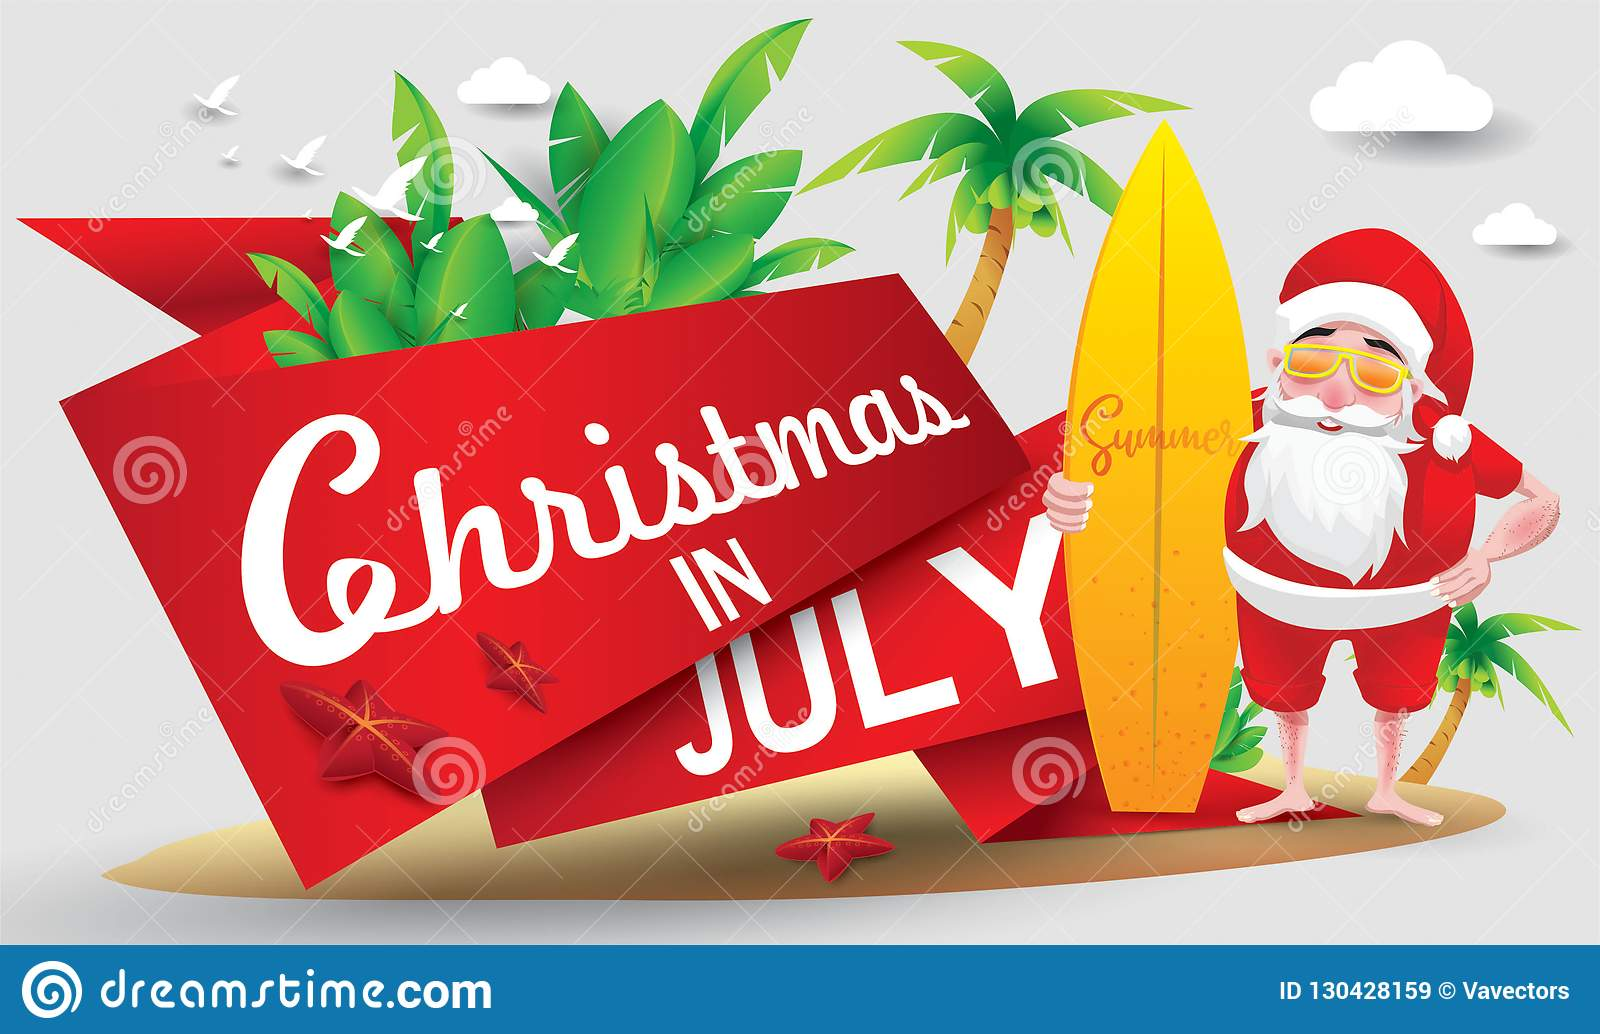 Christmas In August Poster.Christmas In July Stock Vector Illustration Of Beach